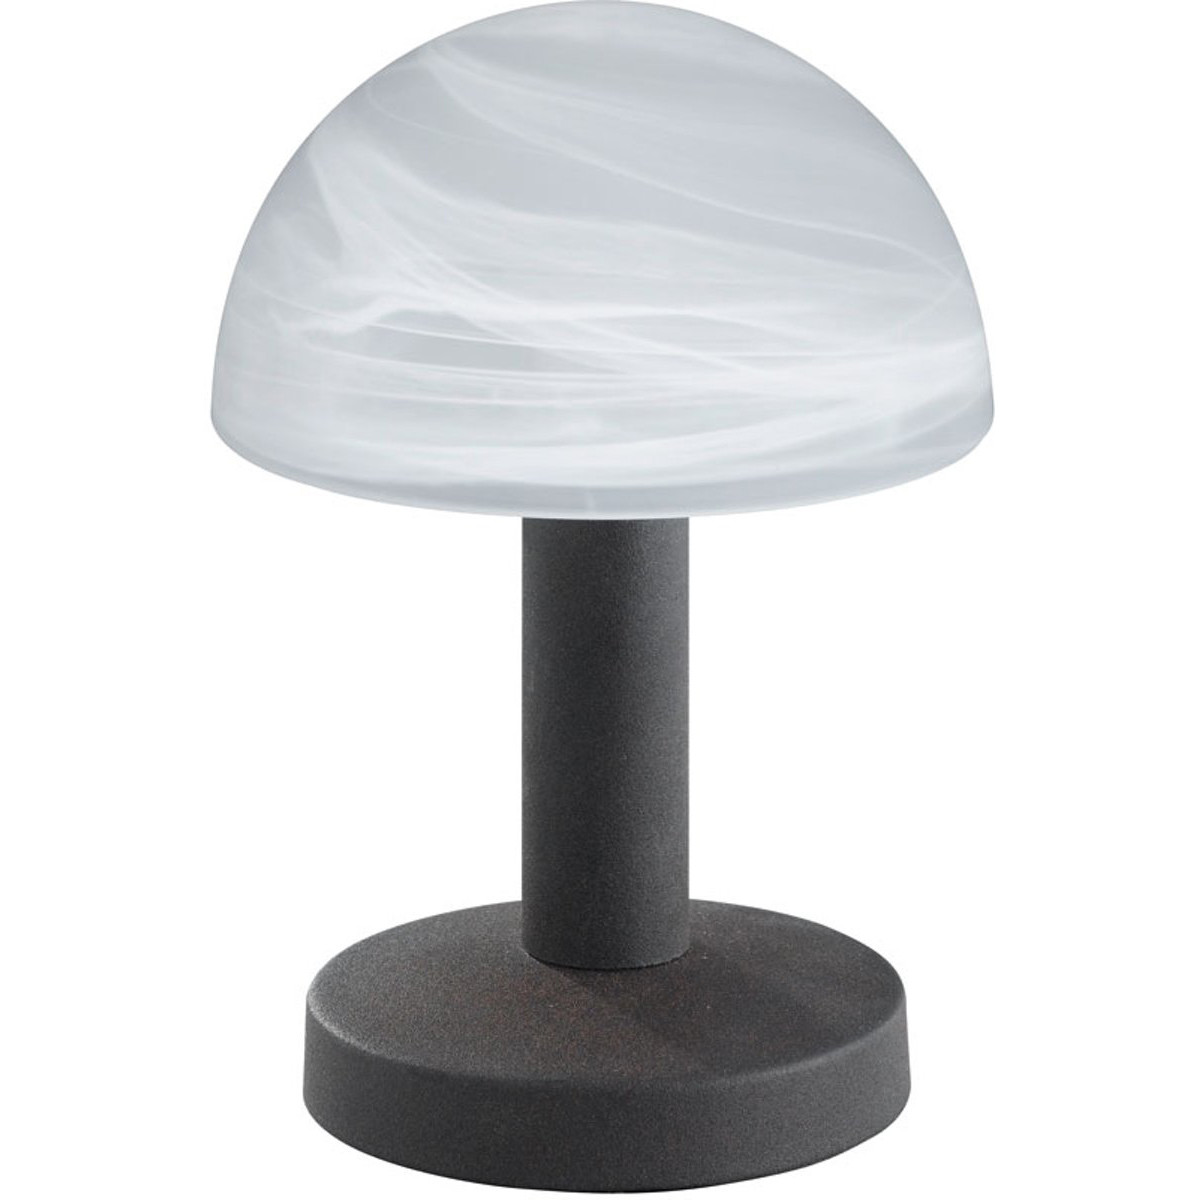 LED Tafellamp - Tafelverlichting - Trion Funki - E14 Fitting - Rond - Roestkleur - Aluminium